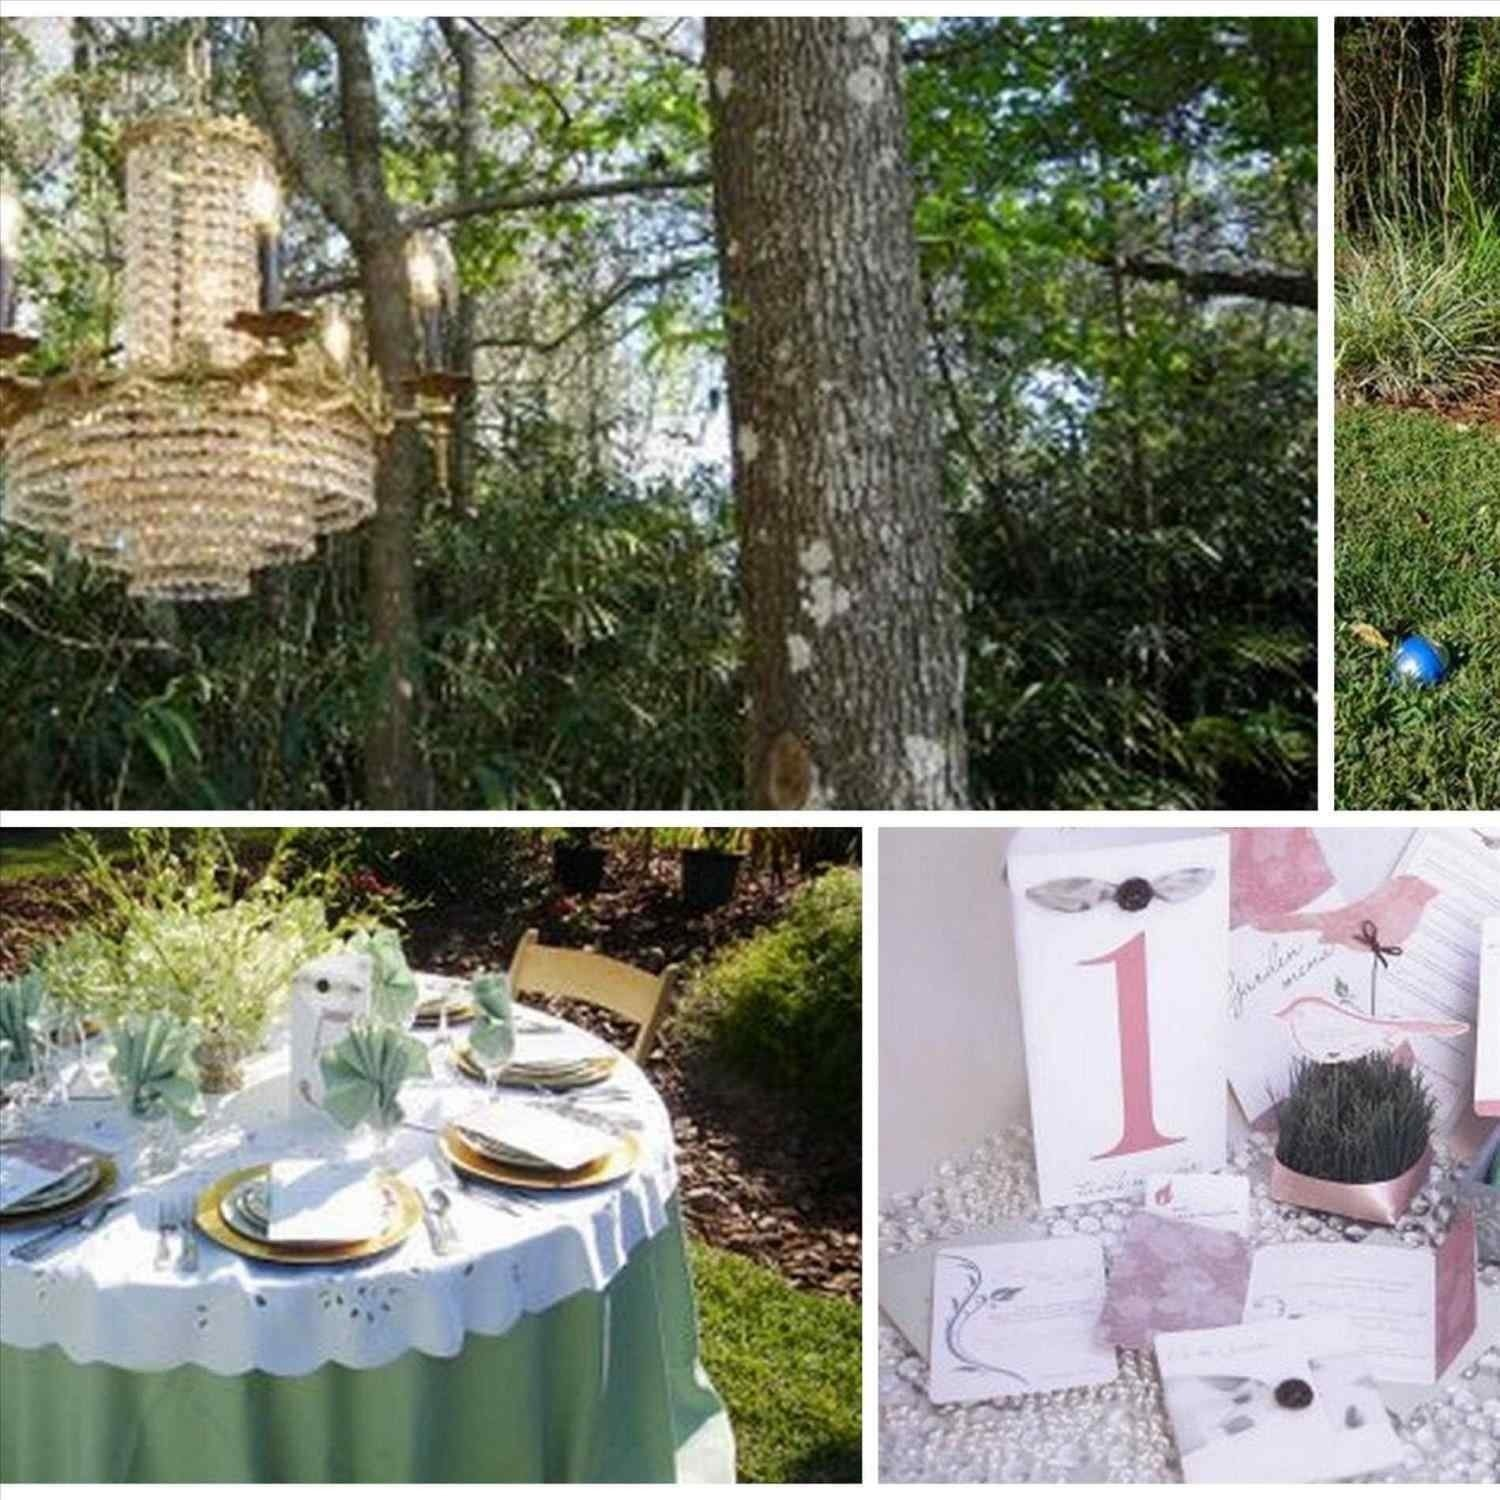 10 Attractive Small Wedding Ideas For Summer incredible small wedding ideas for summer your meme pic backyard